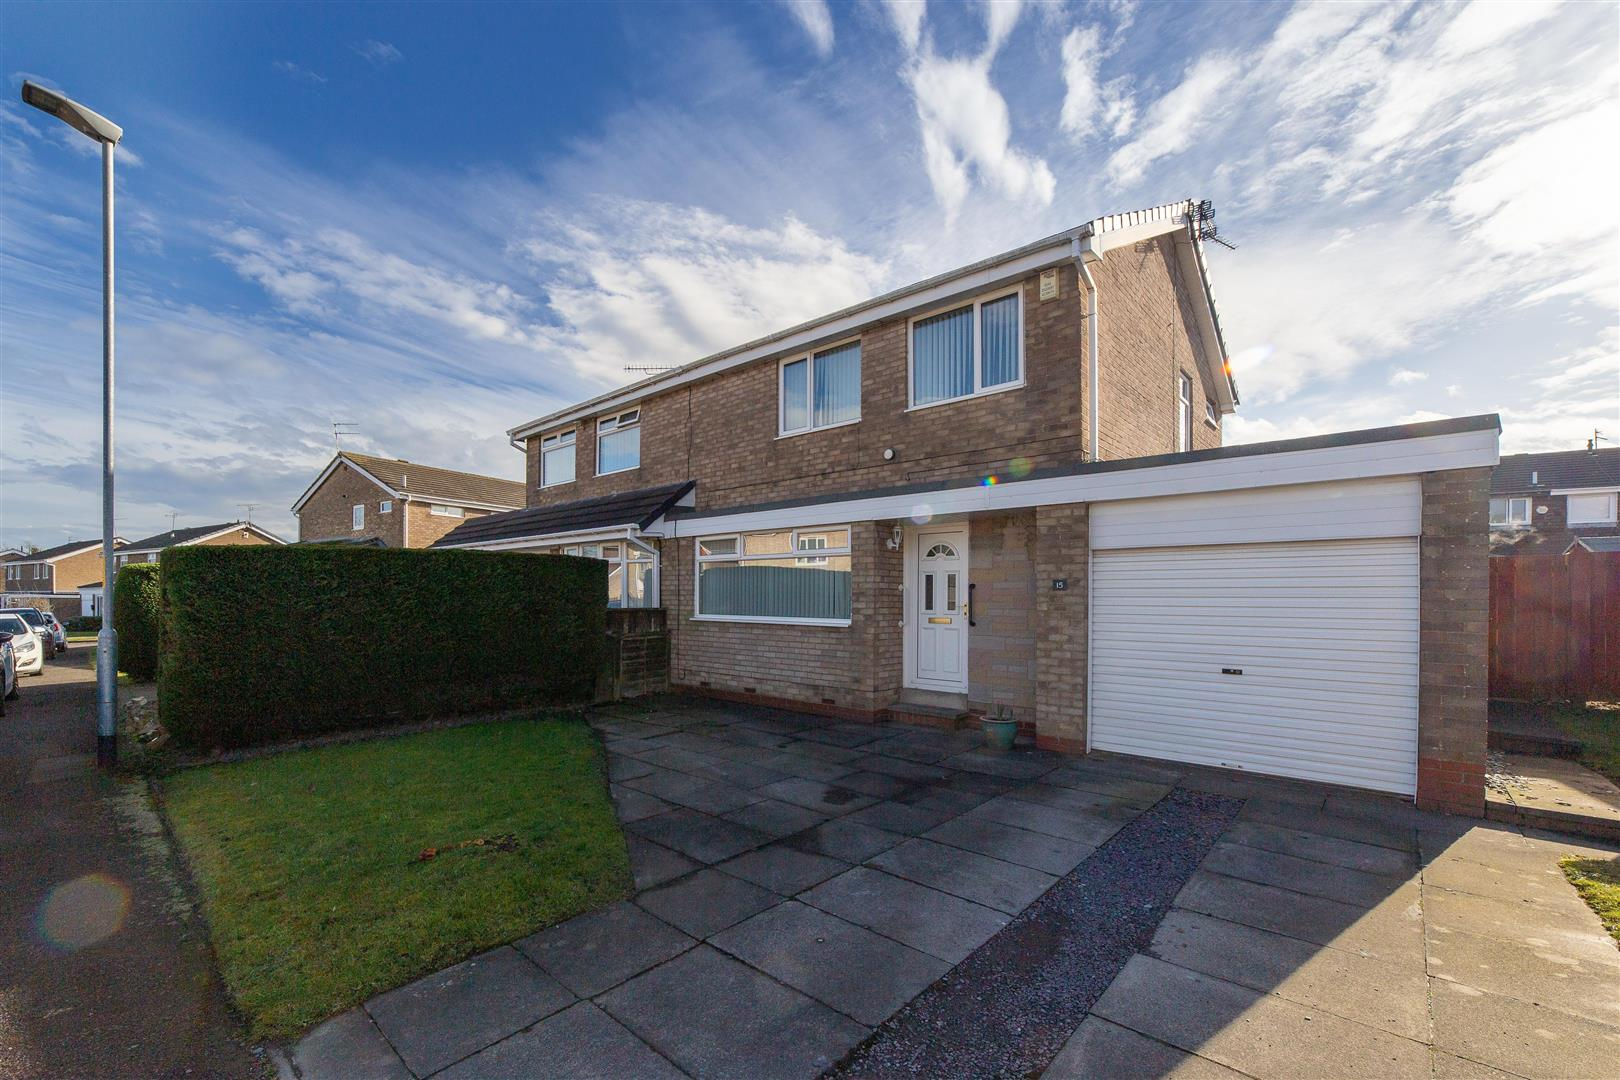 3 bed semi-detached house for sale in Cramlington, NE23 2YF, NE23